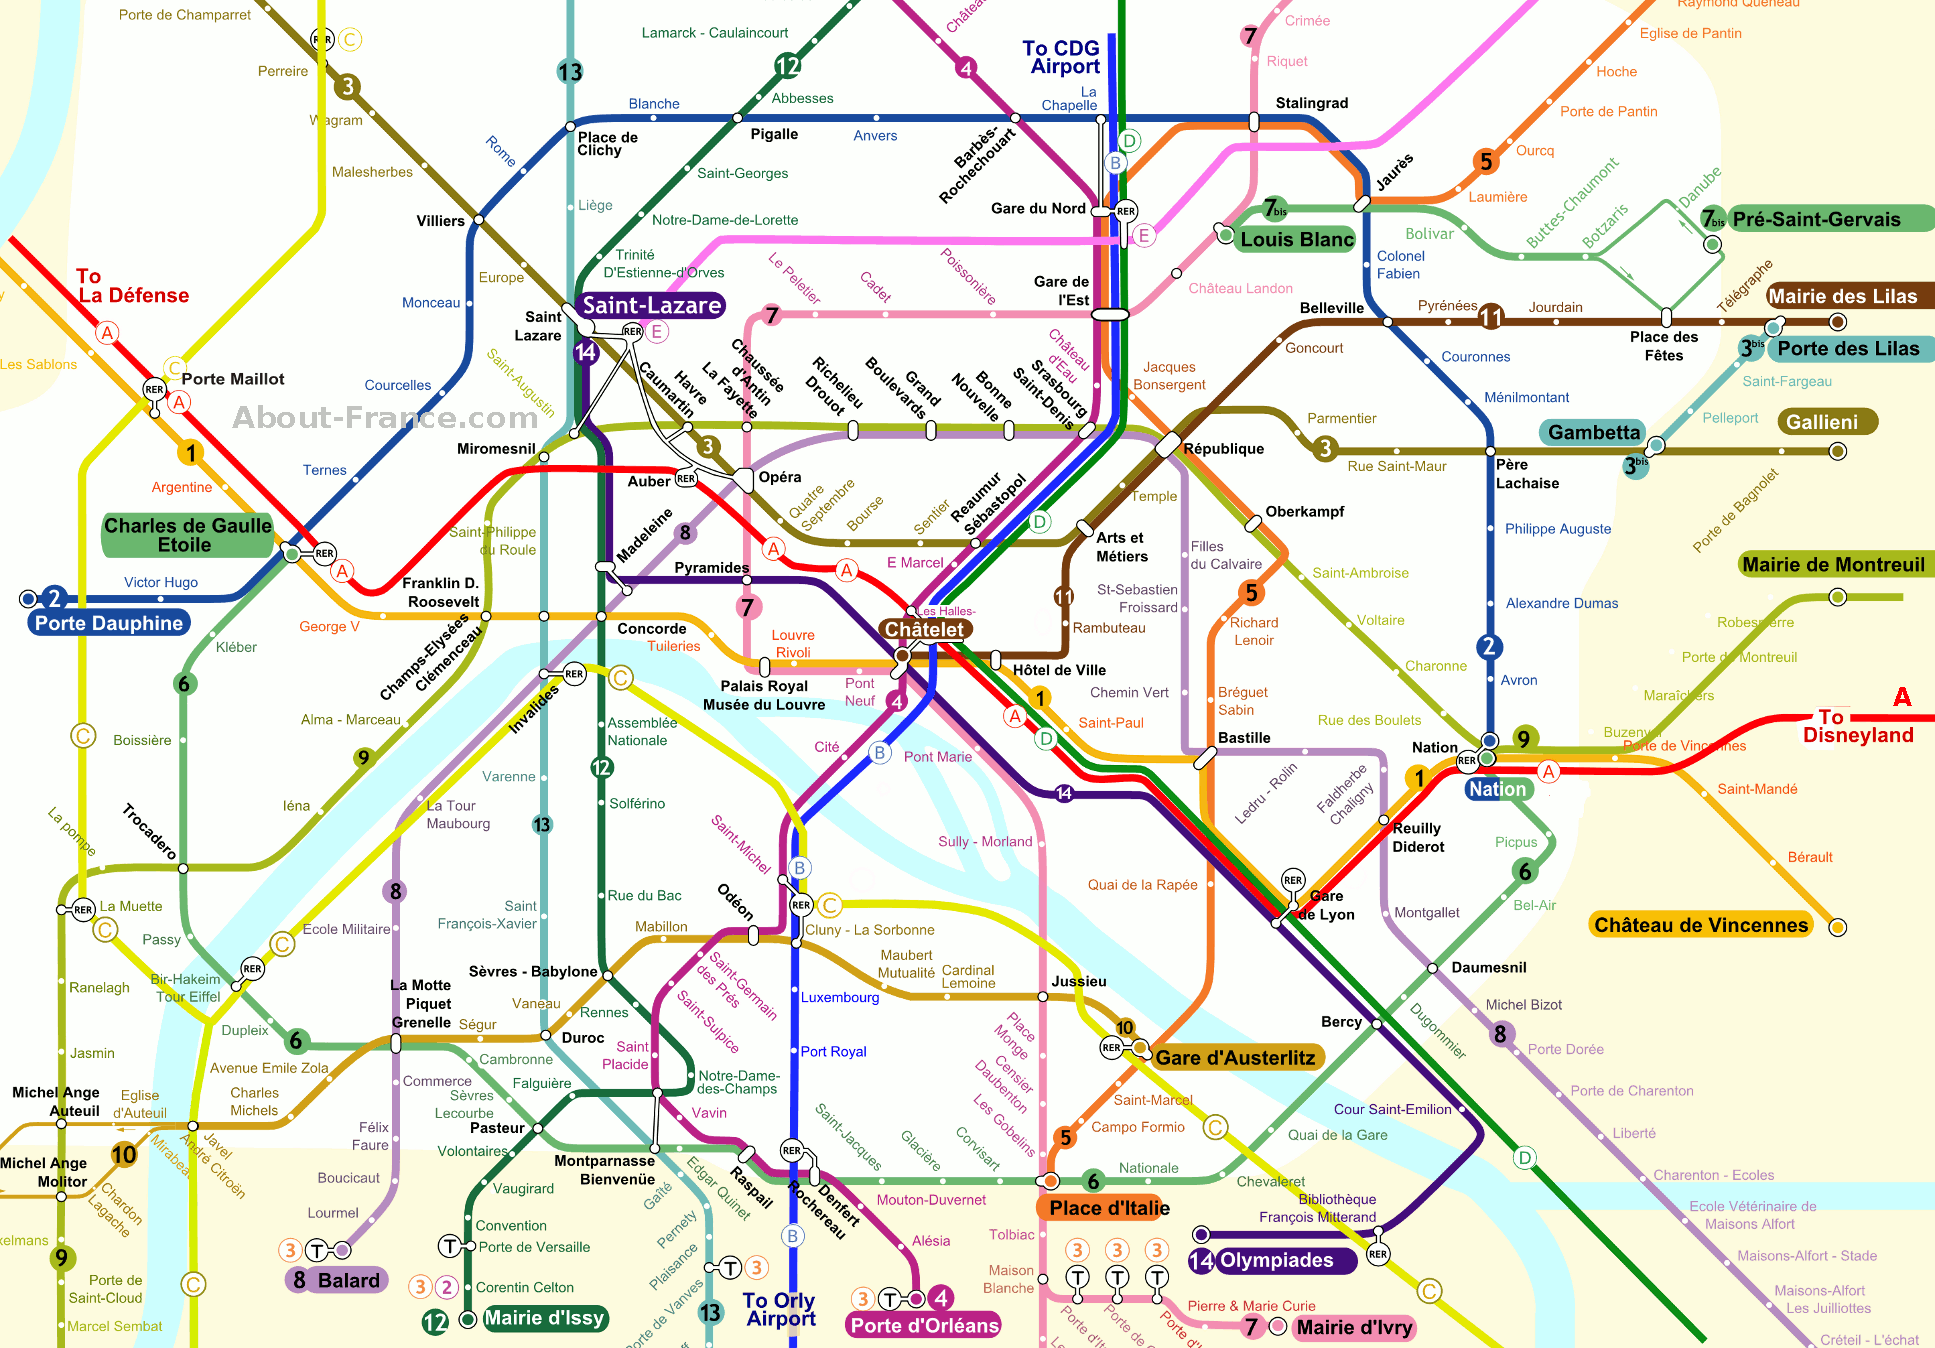 Central Paris Metro Map AboutFrancecom - Google maps paris france metro